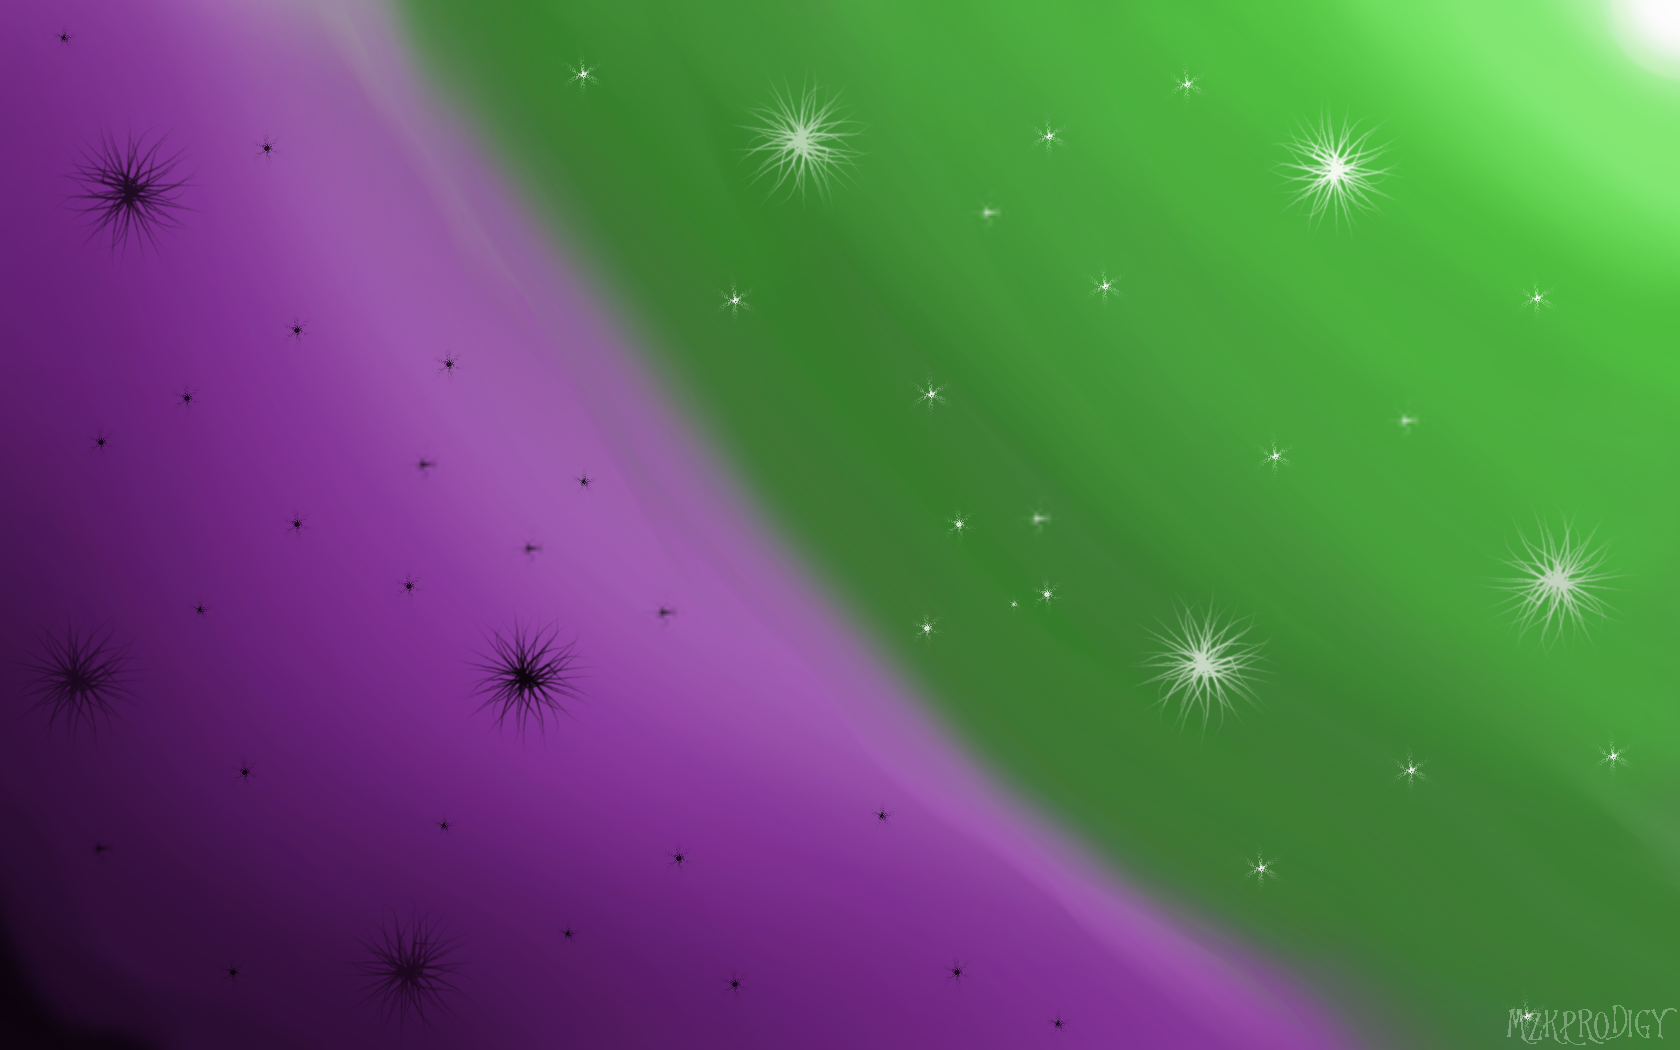 Simple abstract wallpaper green - 954.2KB